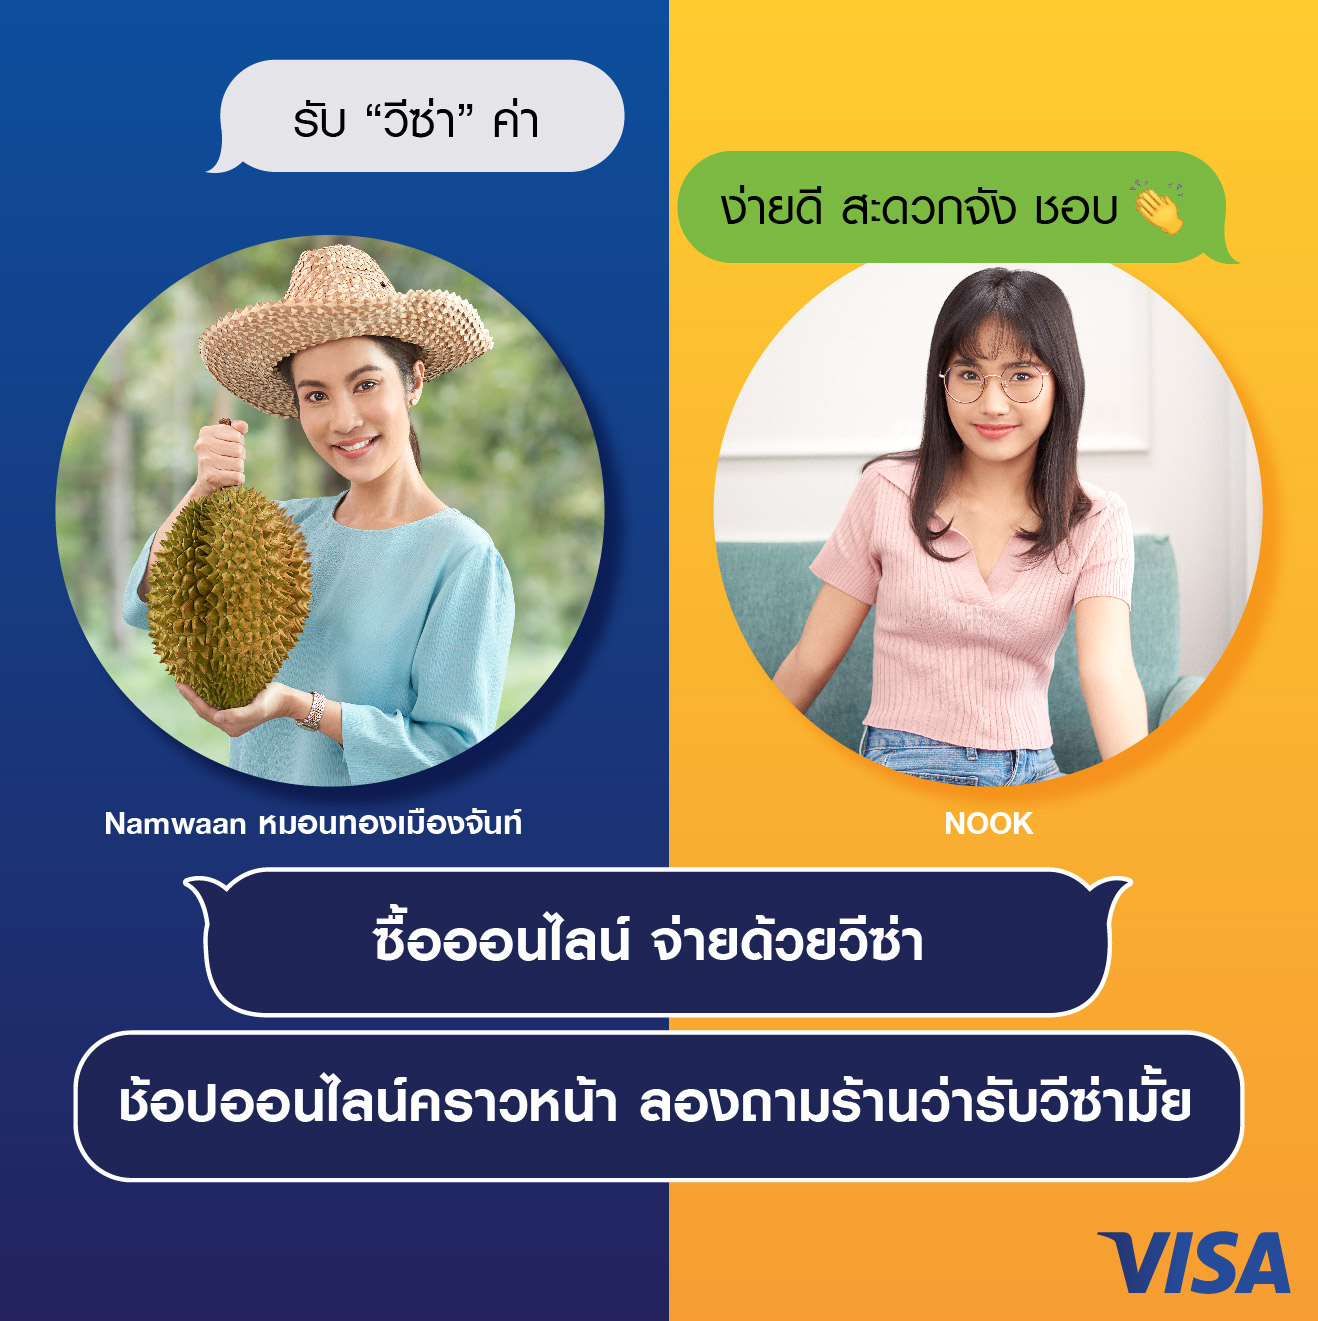 Visa launches program to help Thai social commerce sellers accept digital payments to accelerate recovery and growth